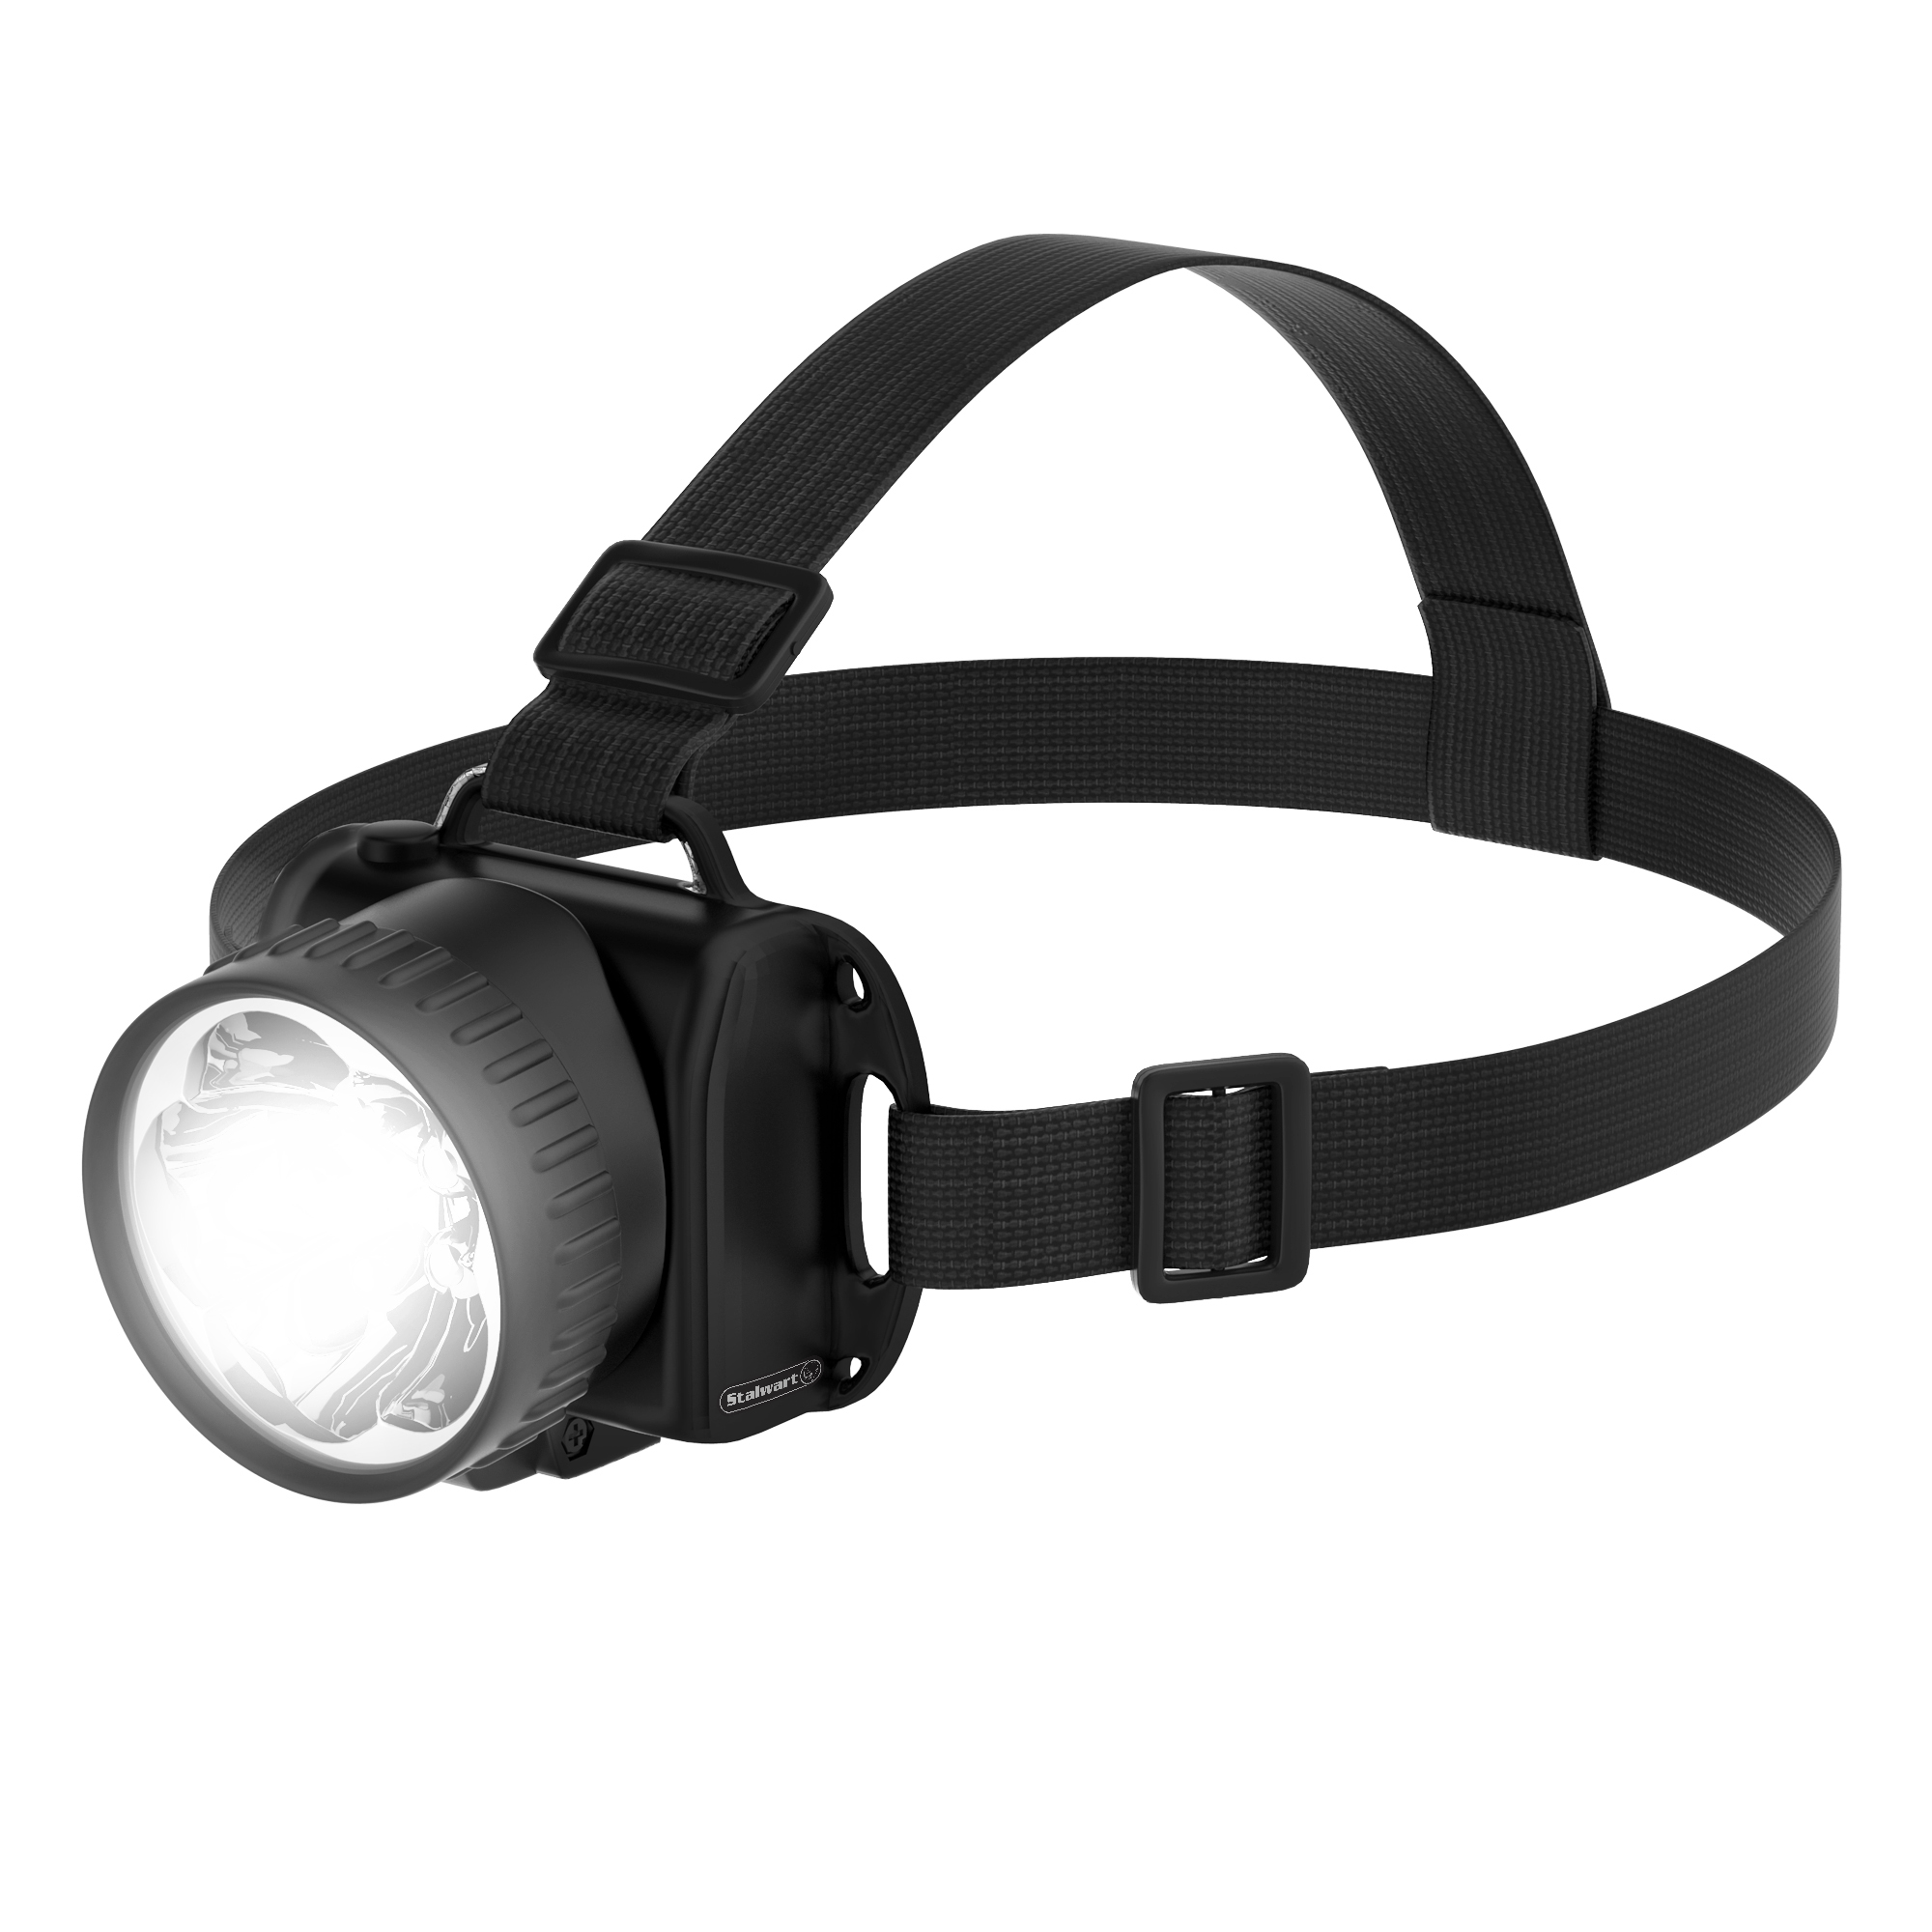 Super Bright 5-LED Headlamp with Adjustable Strap